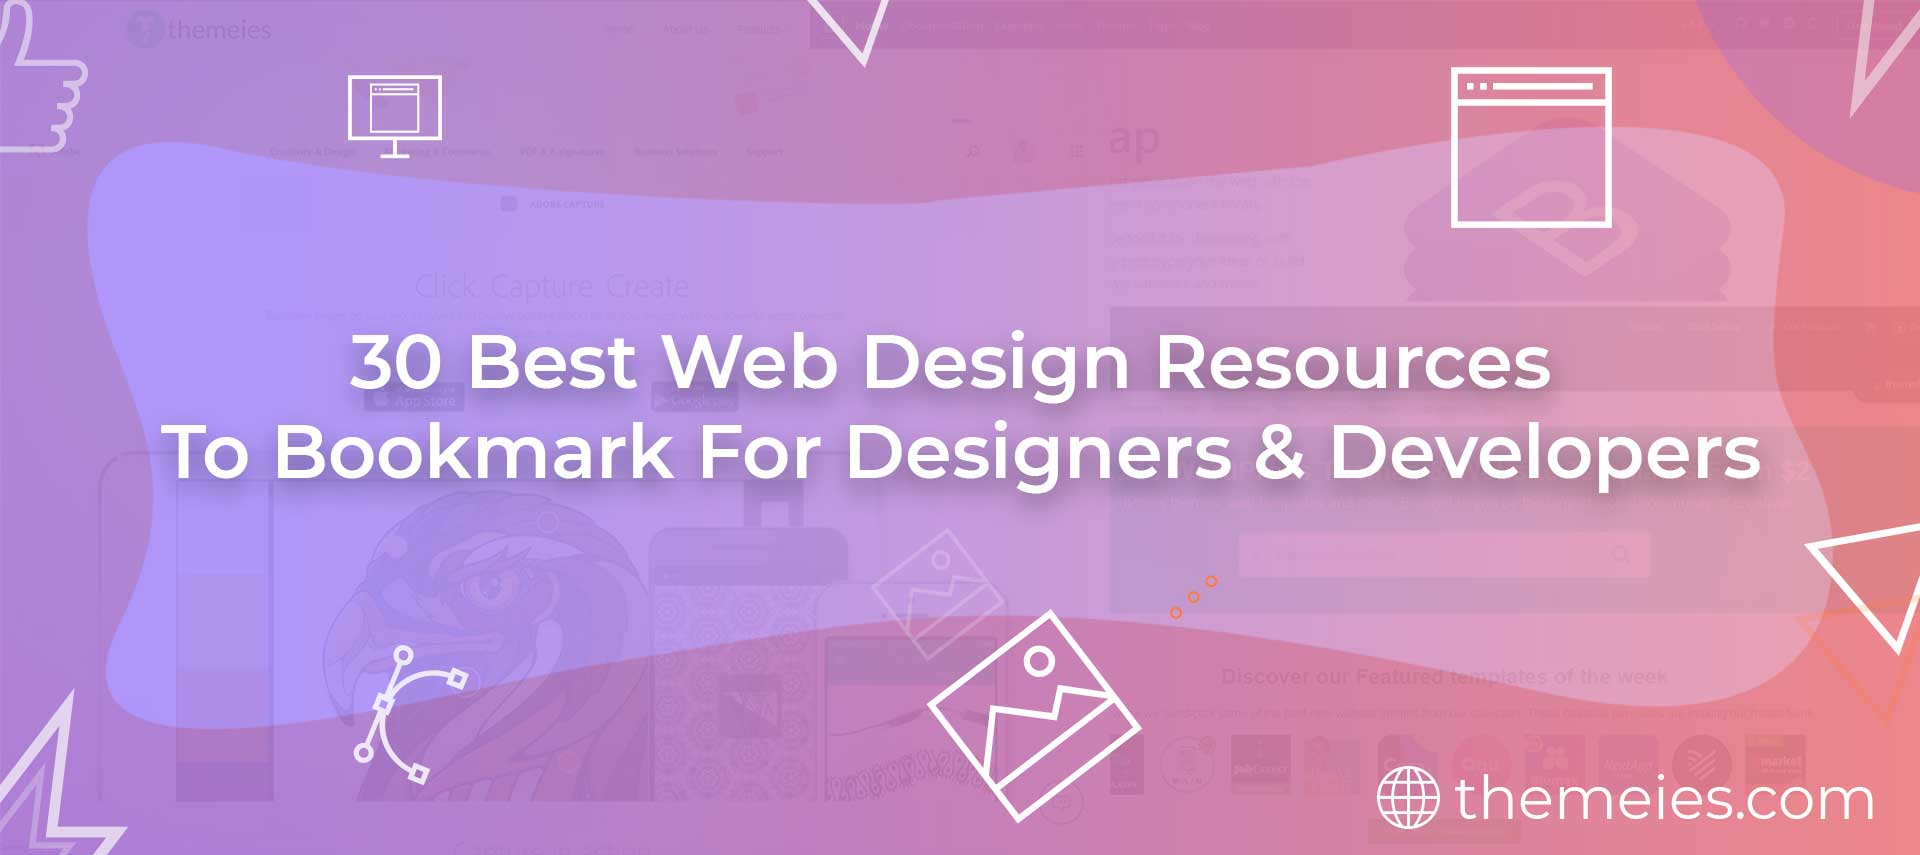 30 Best Web Design Resources To Bookmark For Designers & Developers